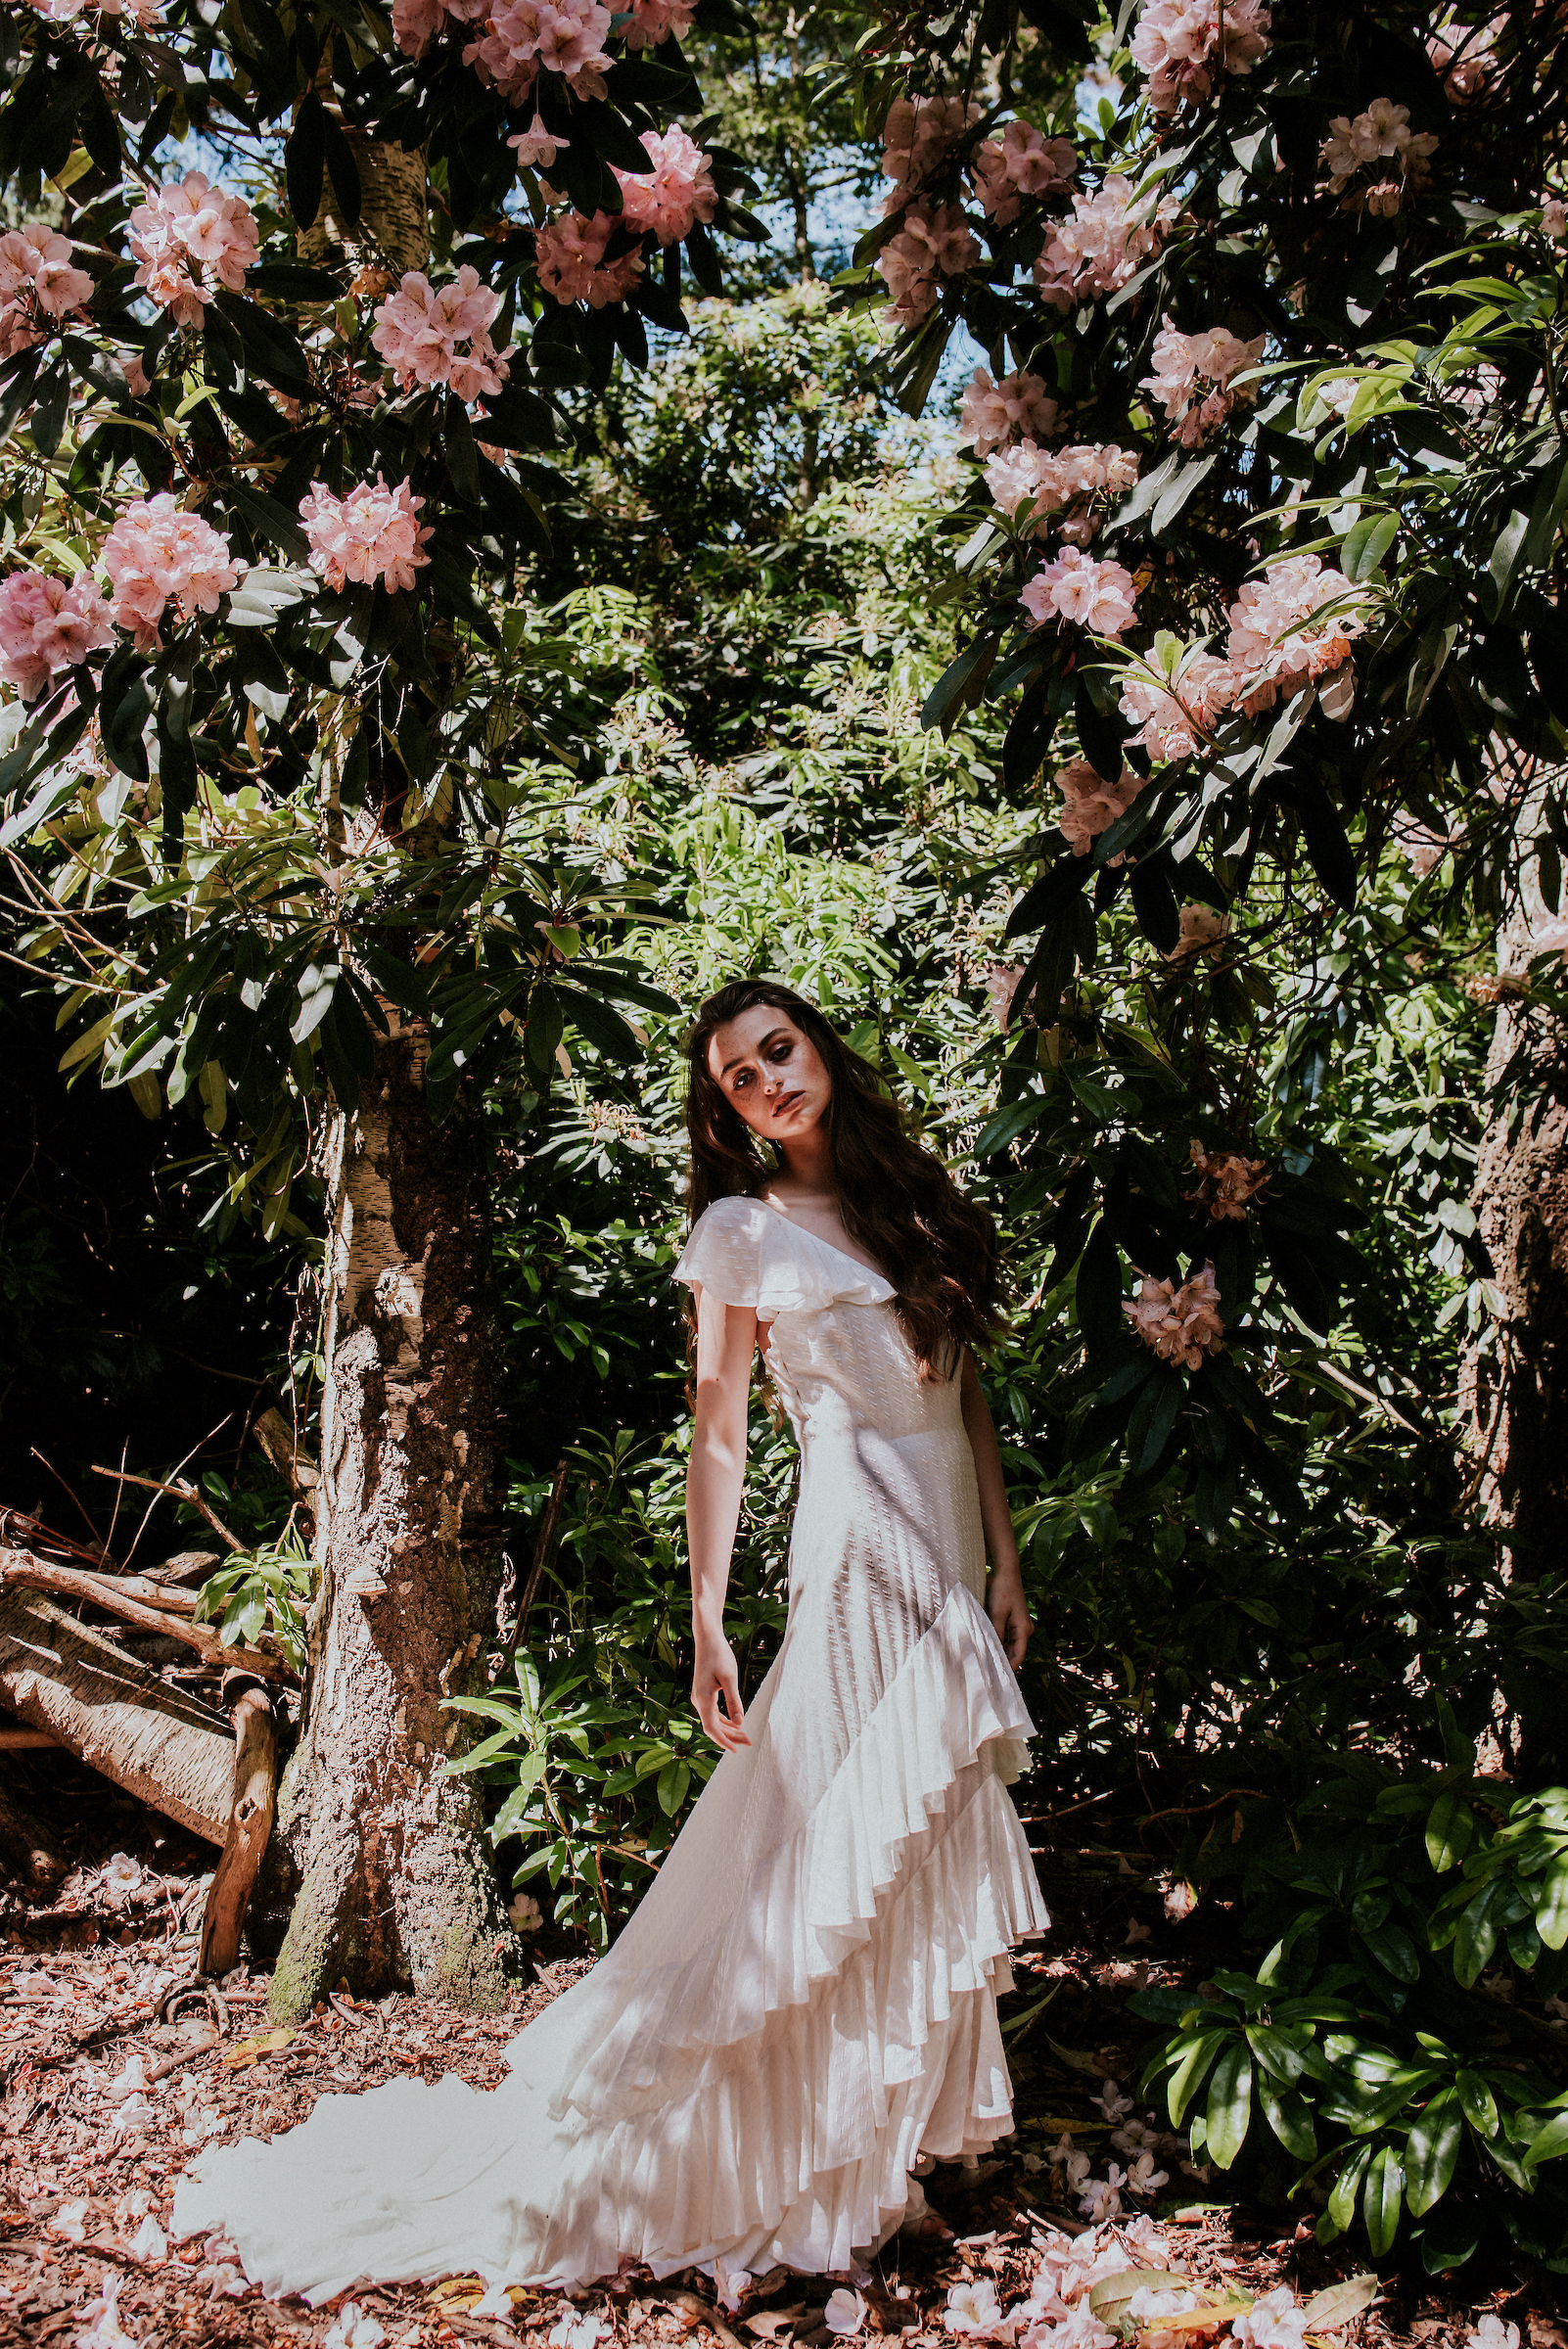 layered ruffle wedding dress by eco friendly bridal designers Rolling in Roses